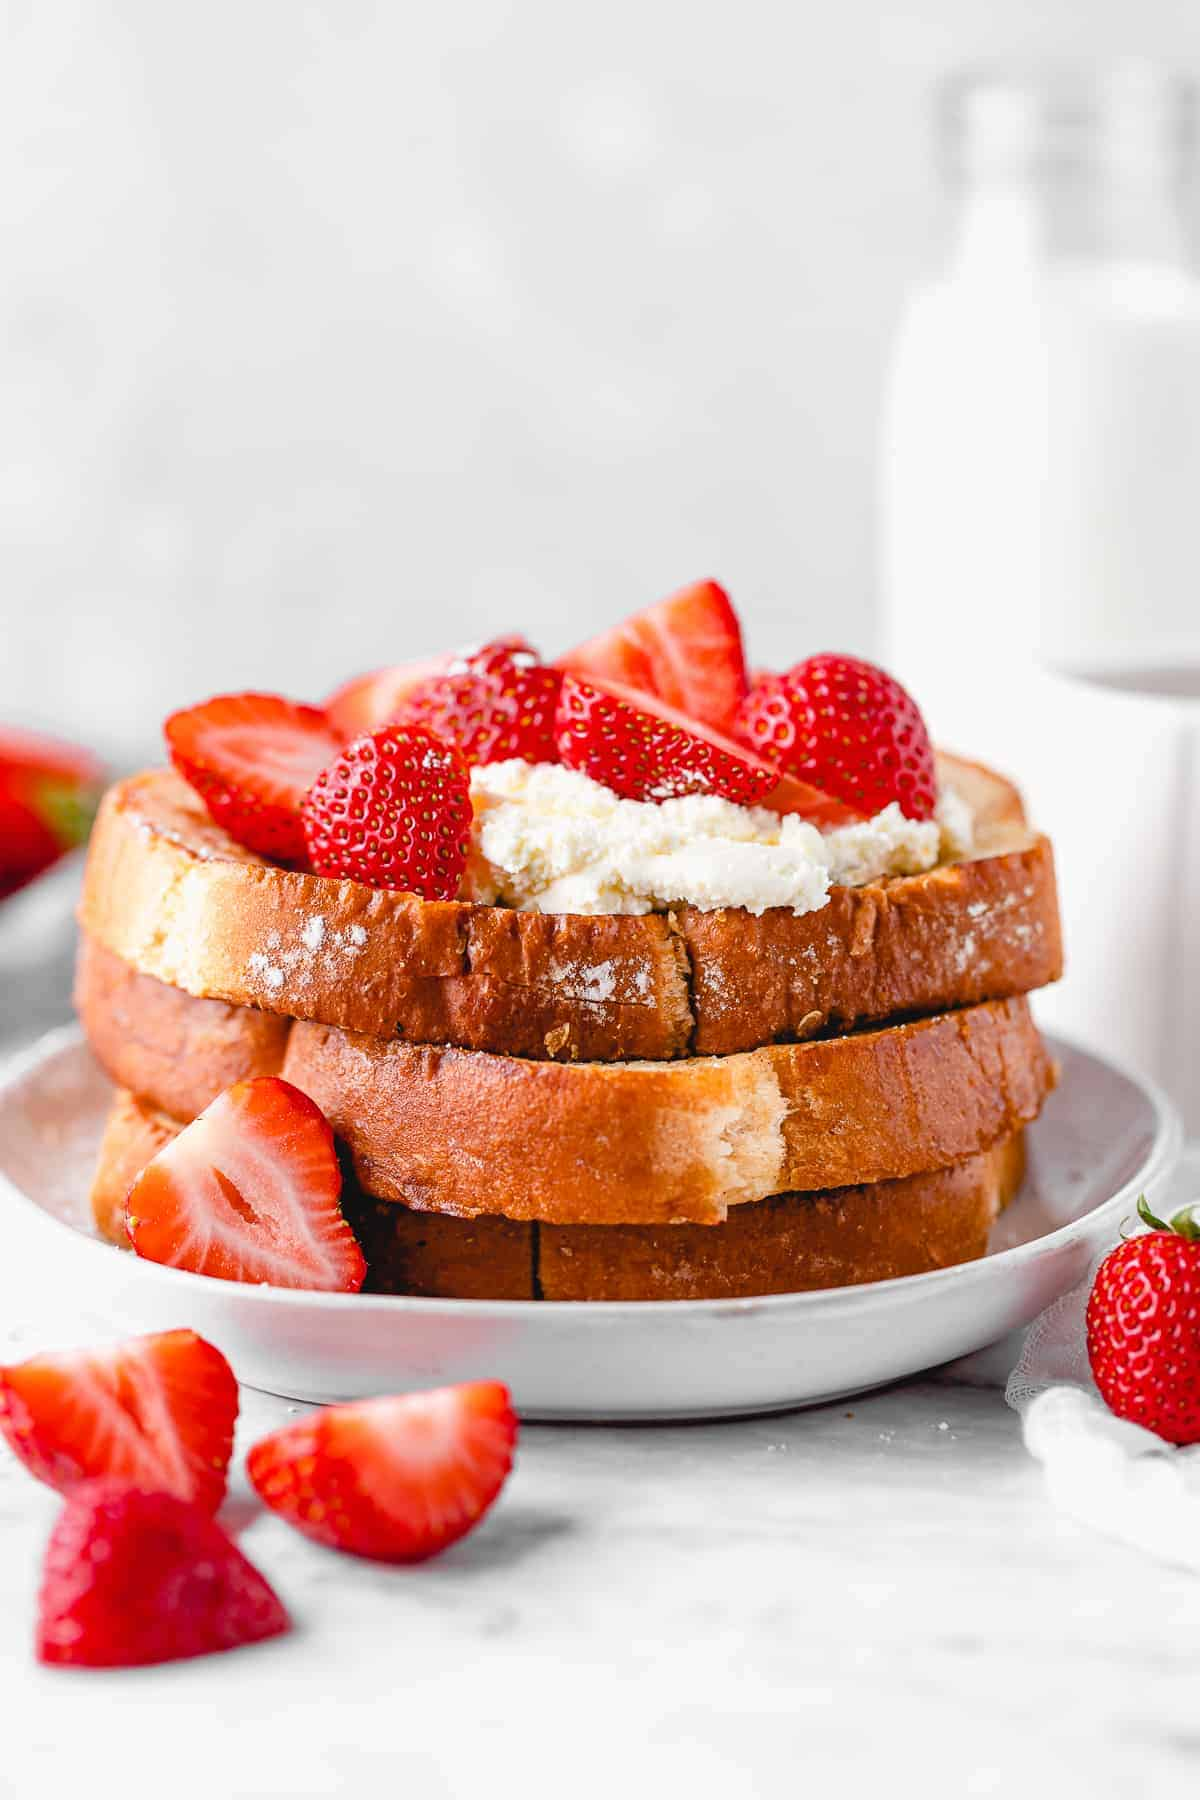 Stacked french toast with strawberries.